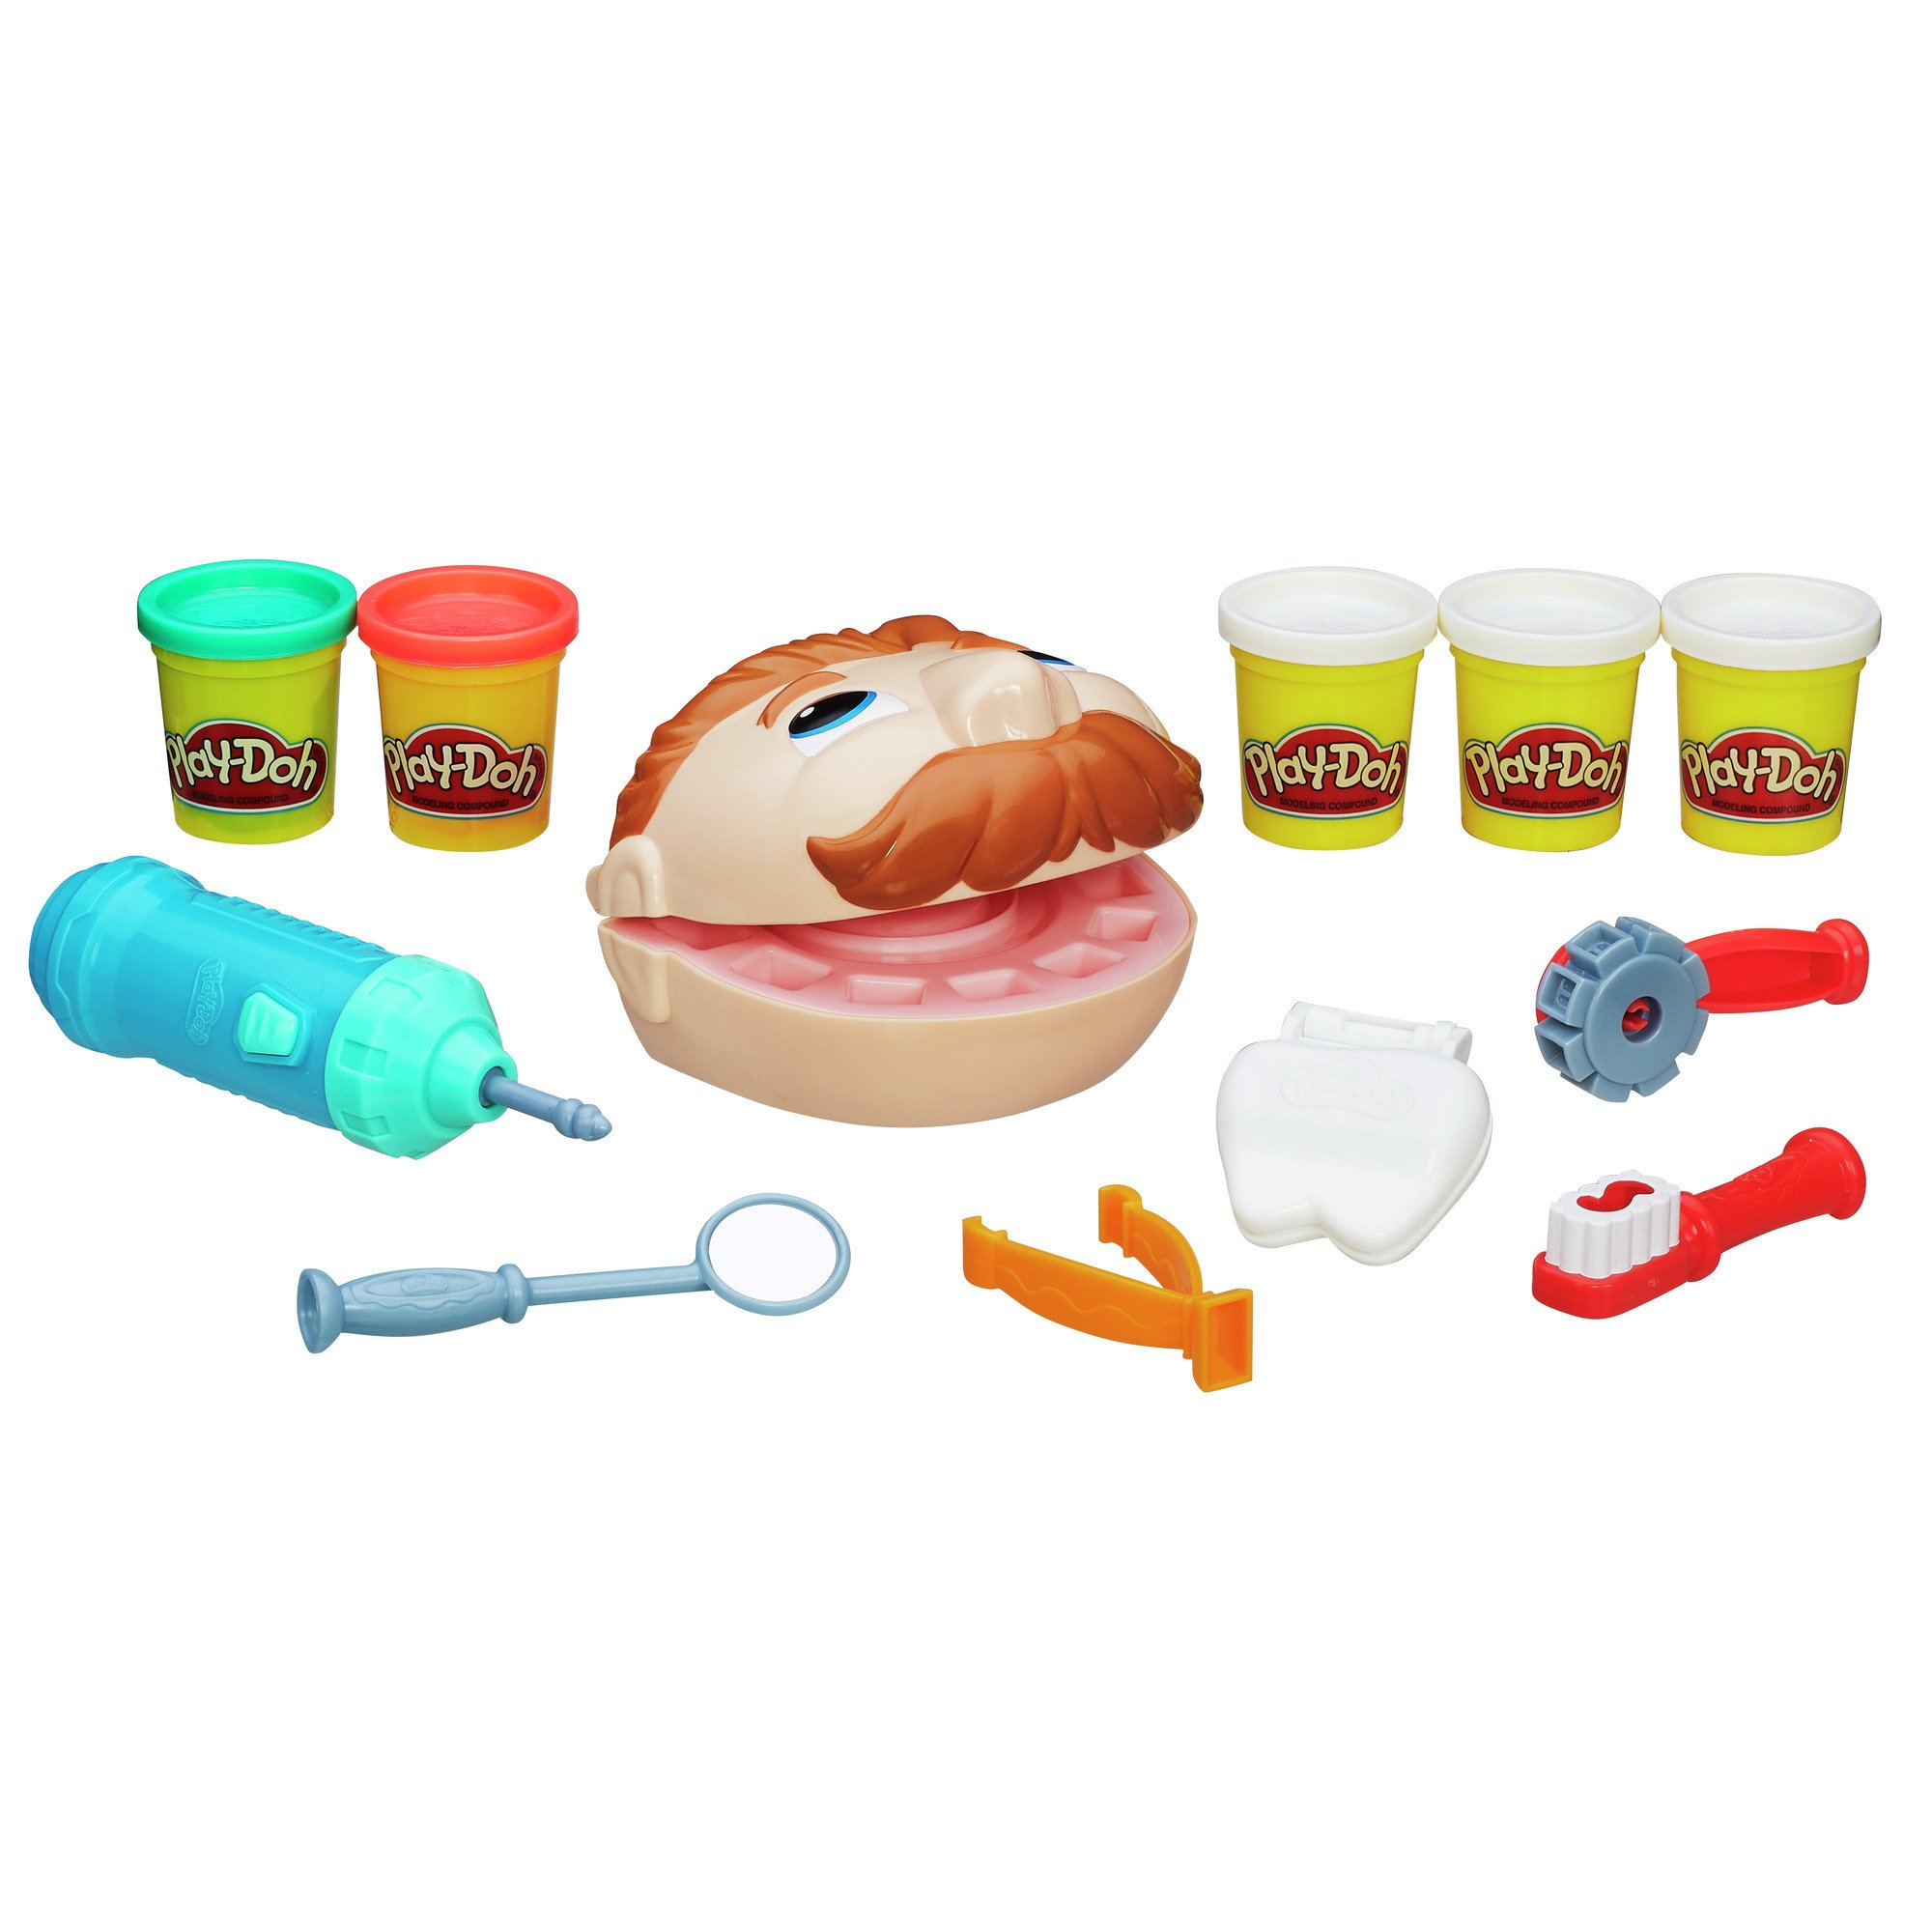 Play-Doh Drill n Fill Playset